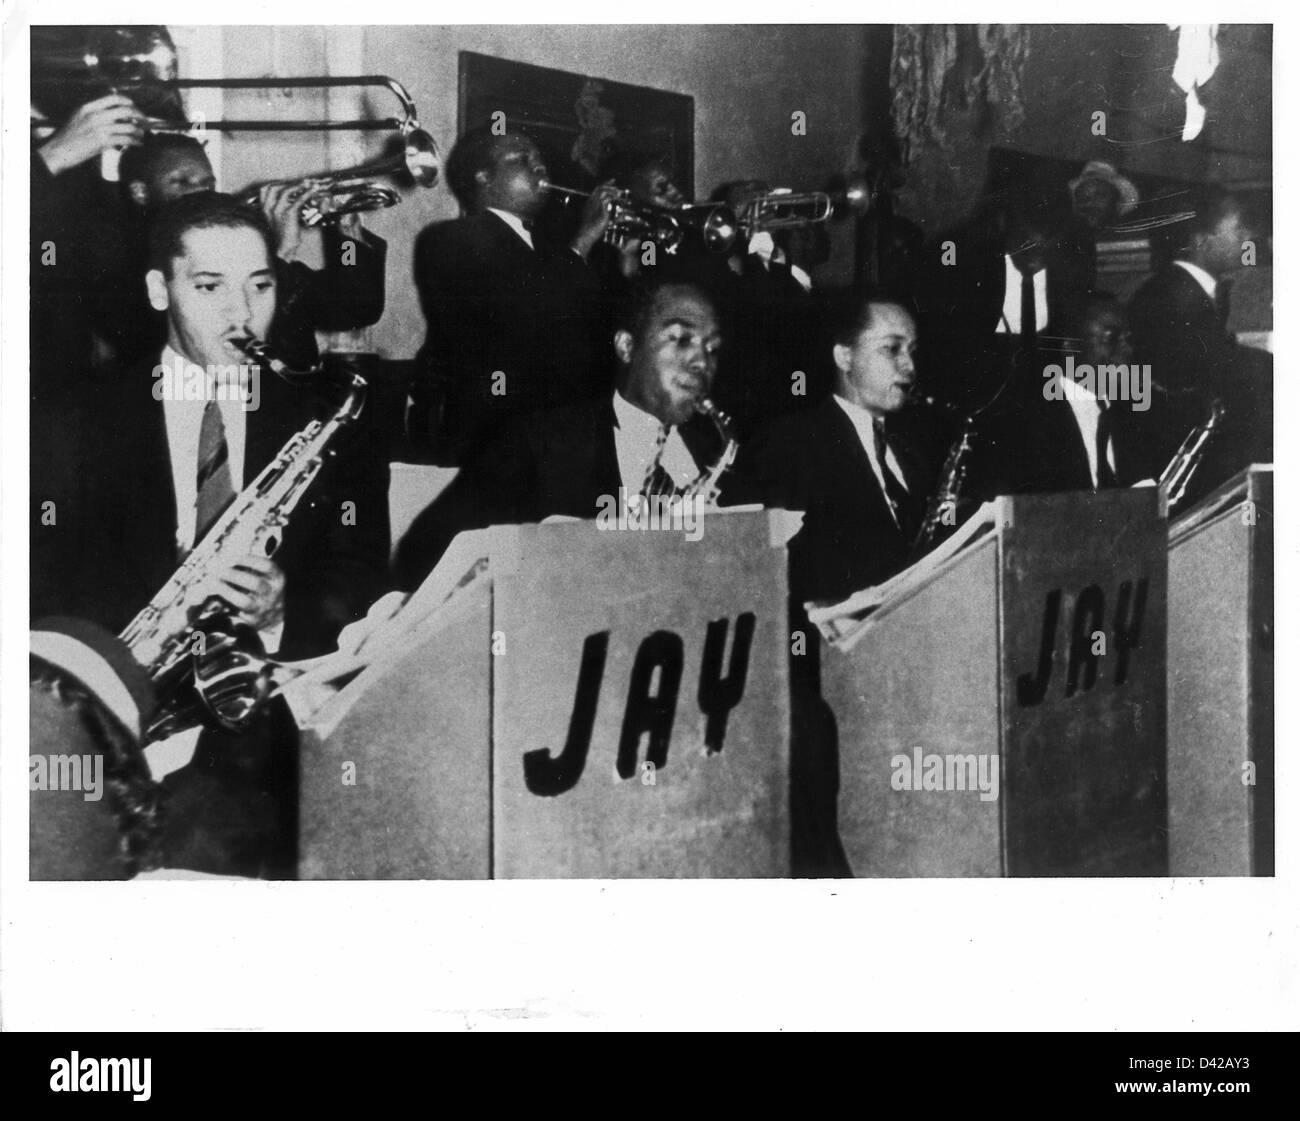 Jazz alto saxophonist Charlie Parkerm (second from left, front row) circa 1938 as a member of the Jay McShann Orchestra - Stock Image